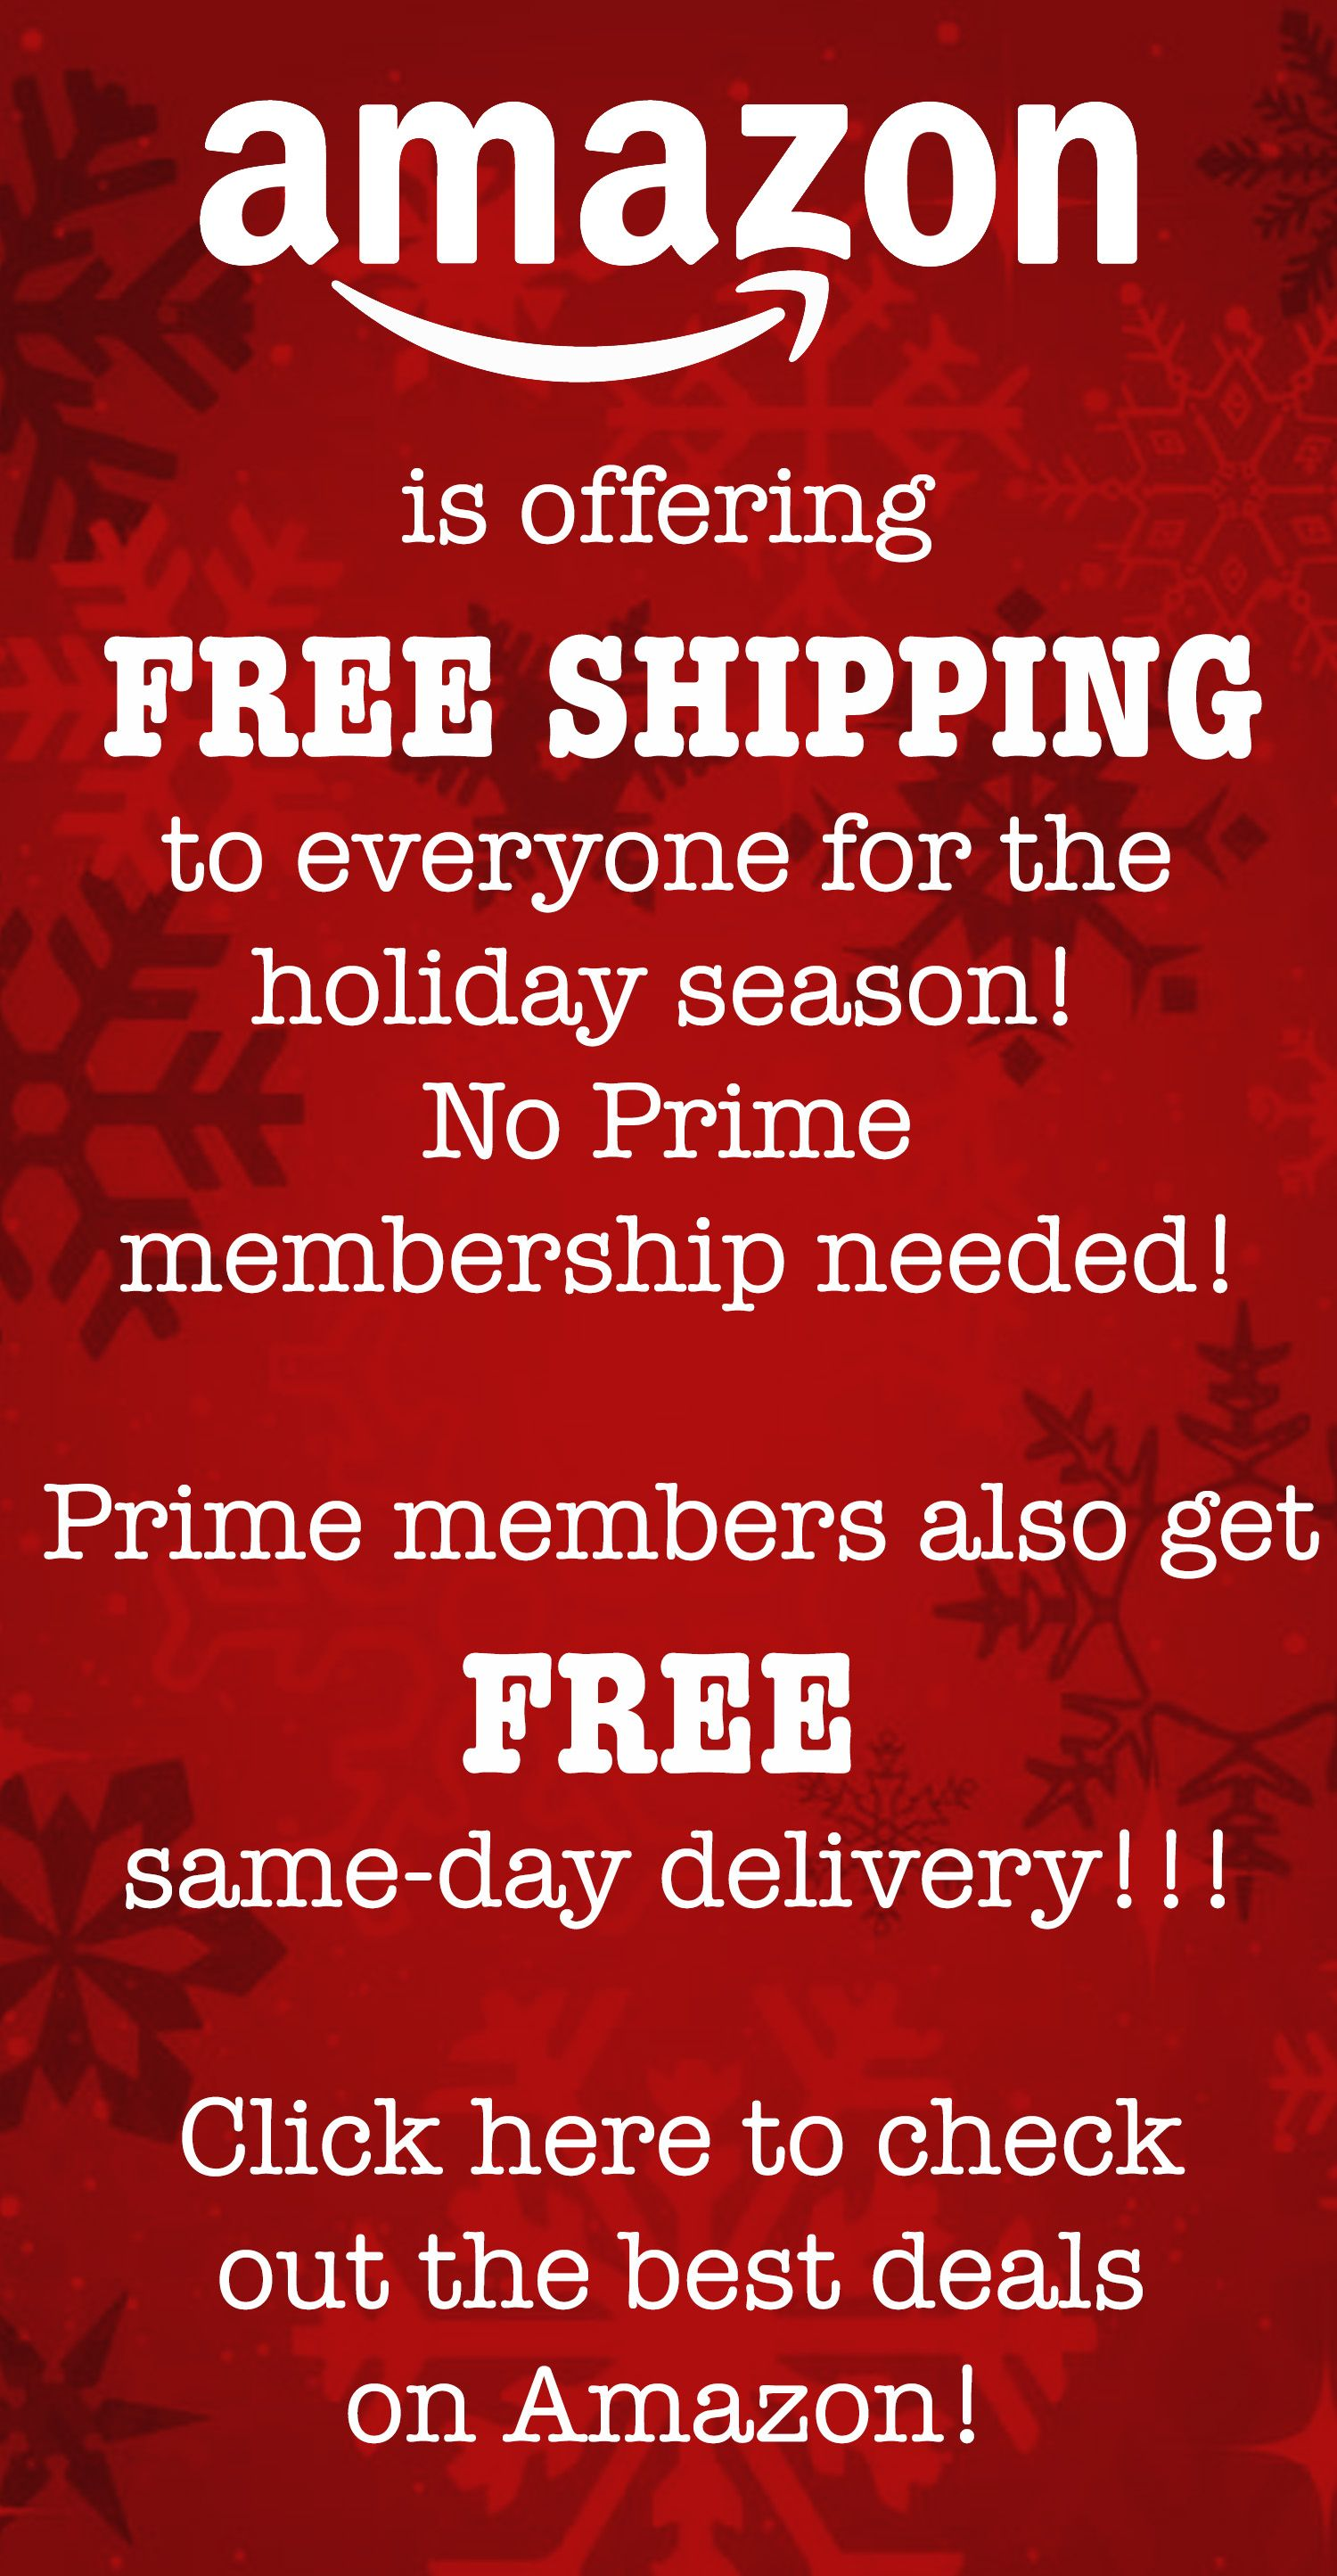 Amazon Offers Free Shipping For Everyone Great Finds Amazon Prime Deal Best Amazon Deals Amazon